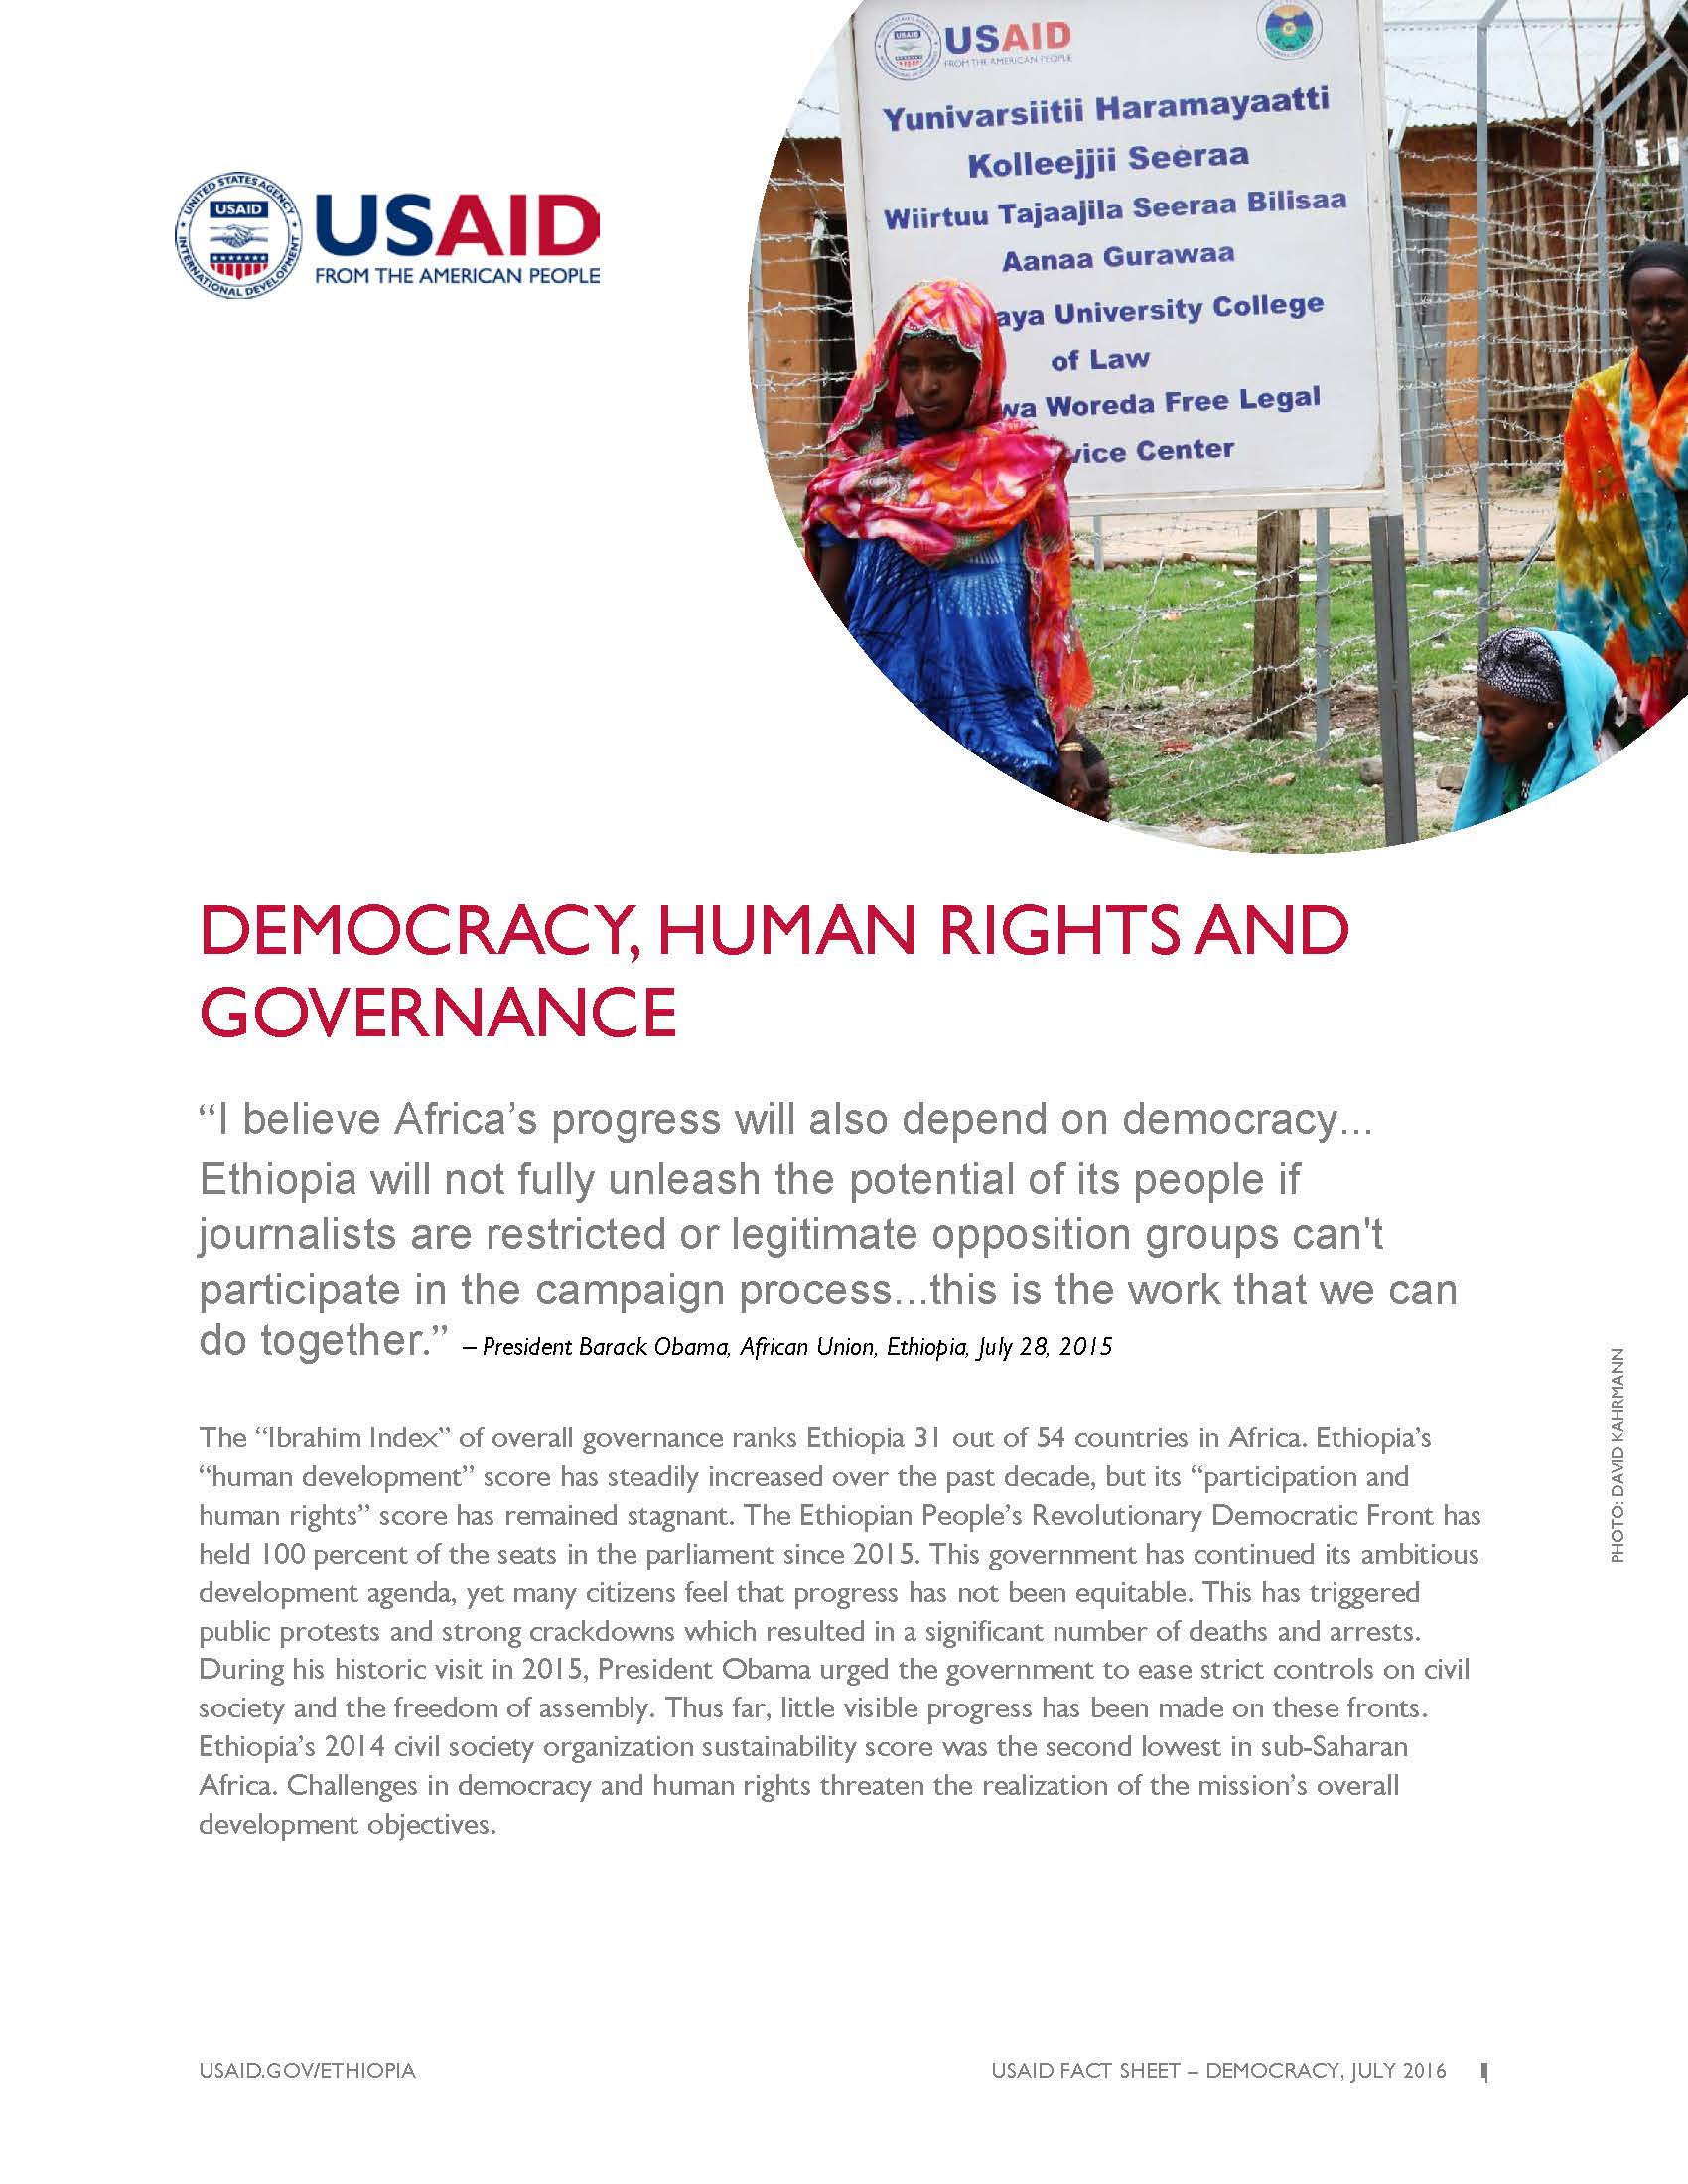 Ethiopia Democracy, Human Rights, and Governance